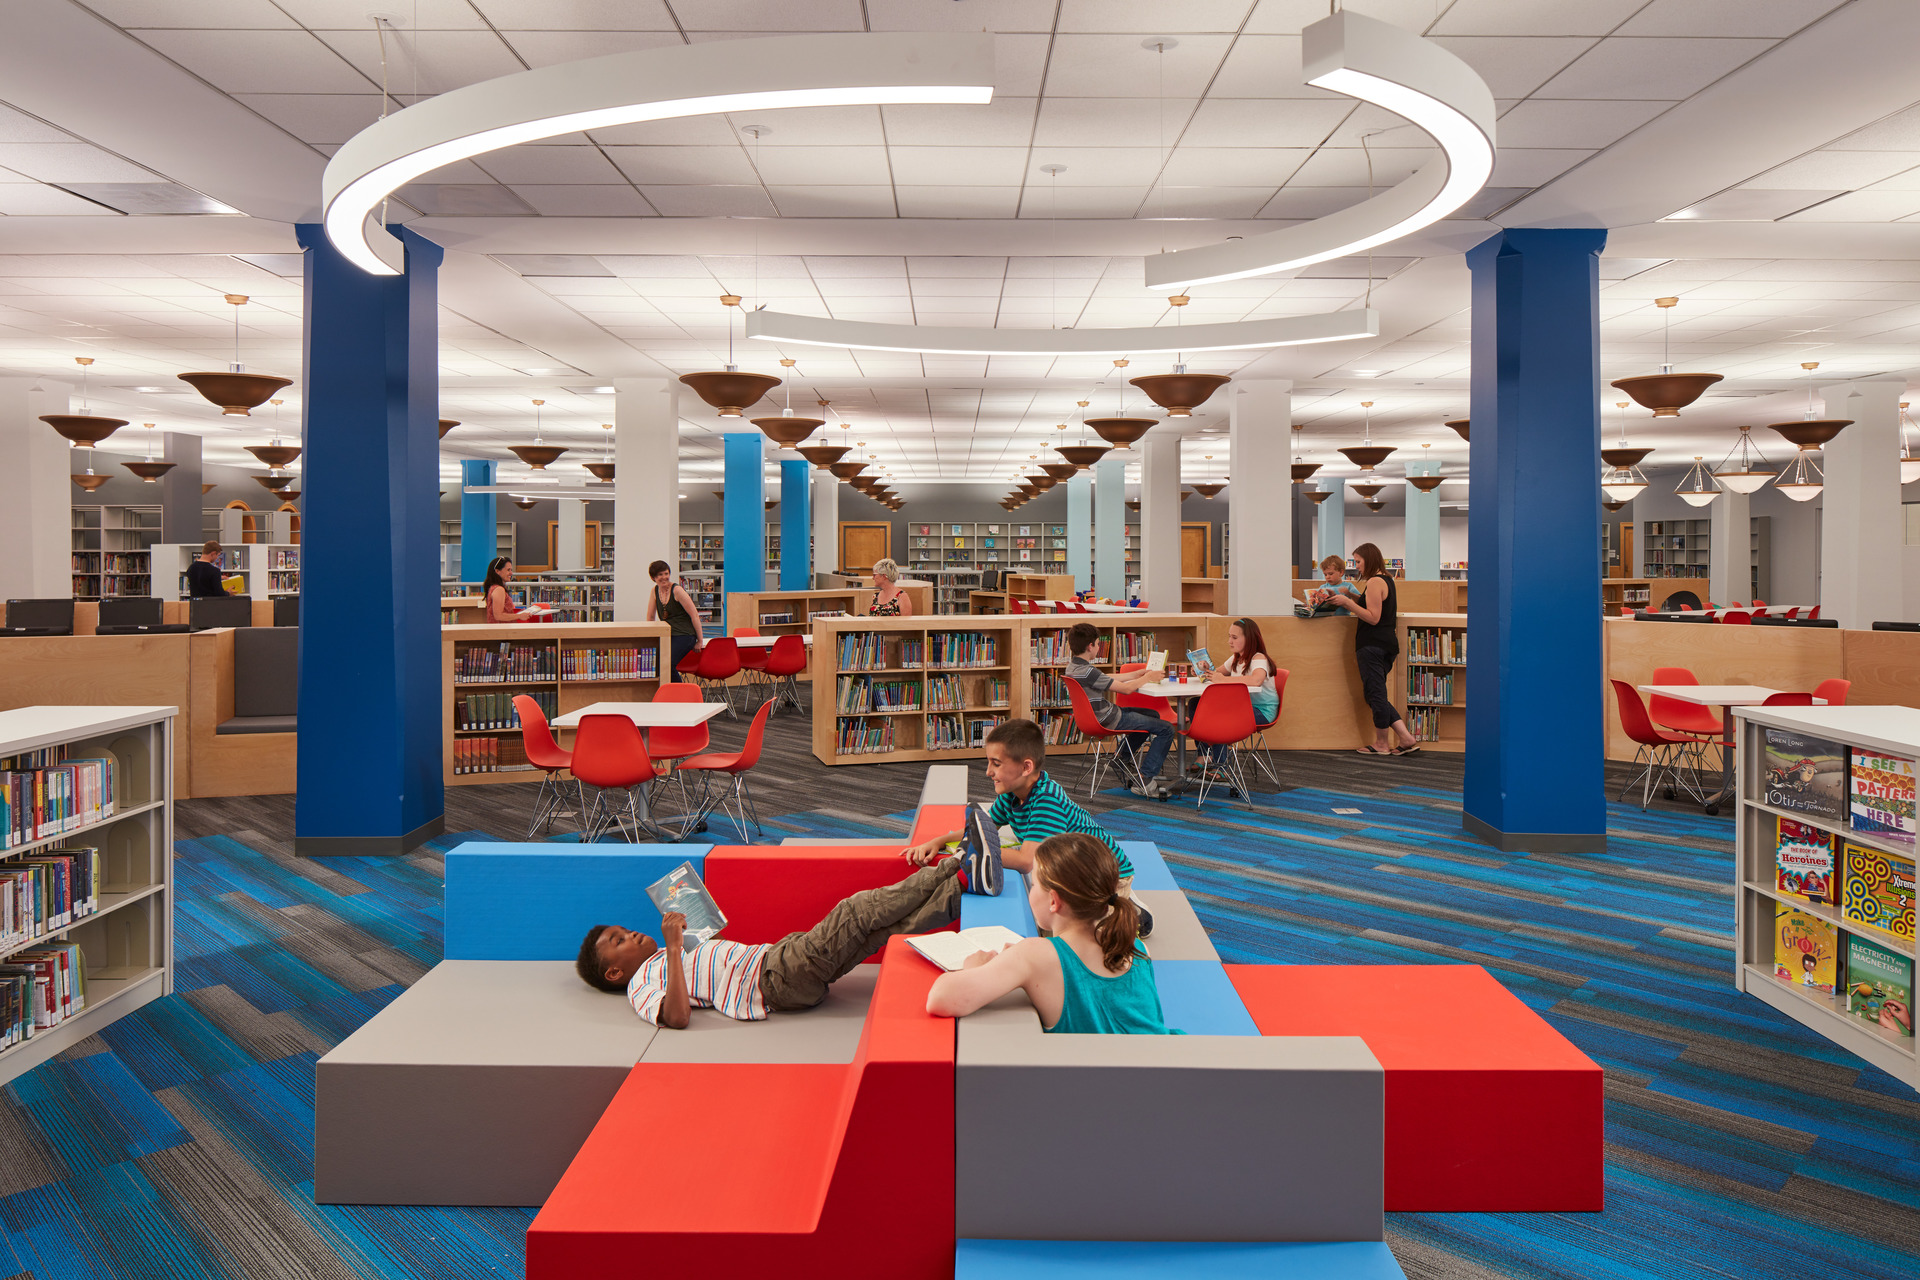 The bright colors SIXINCH offers brings a vibrant vibe into the educational space. This installation is the Thomas Hugh's Children's Library at the Harold Washington Library Center in Chicago designed by Gensler.